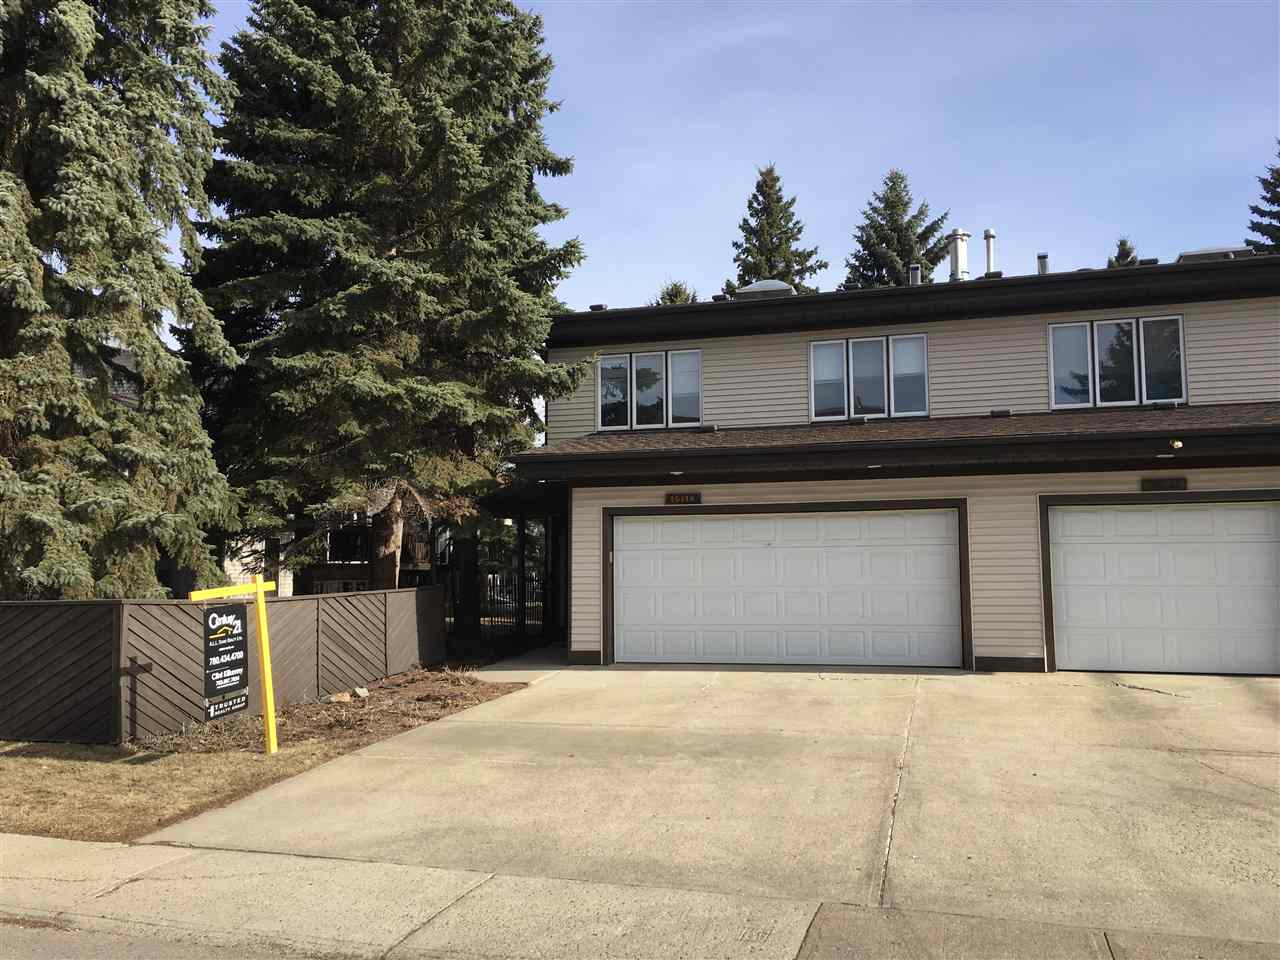 15118 45 Avenue NW, 3 bed, 2.1 bath, at $275,000